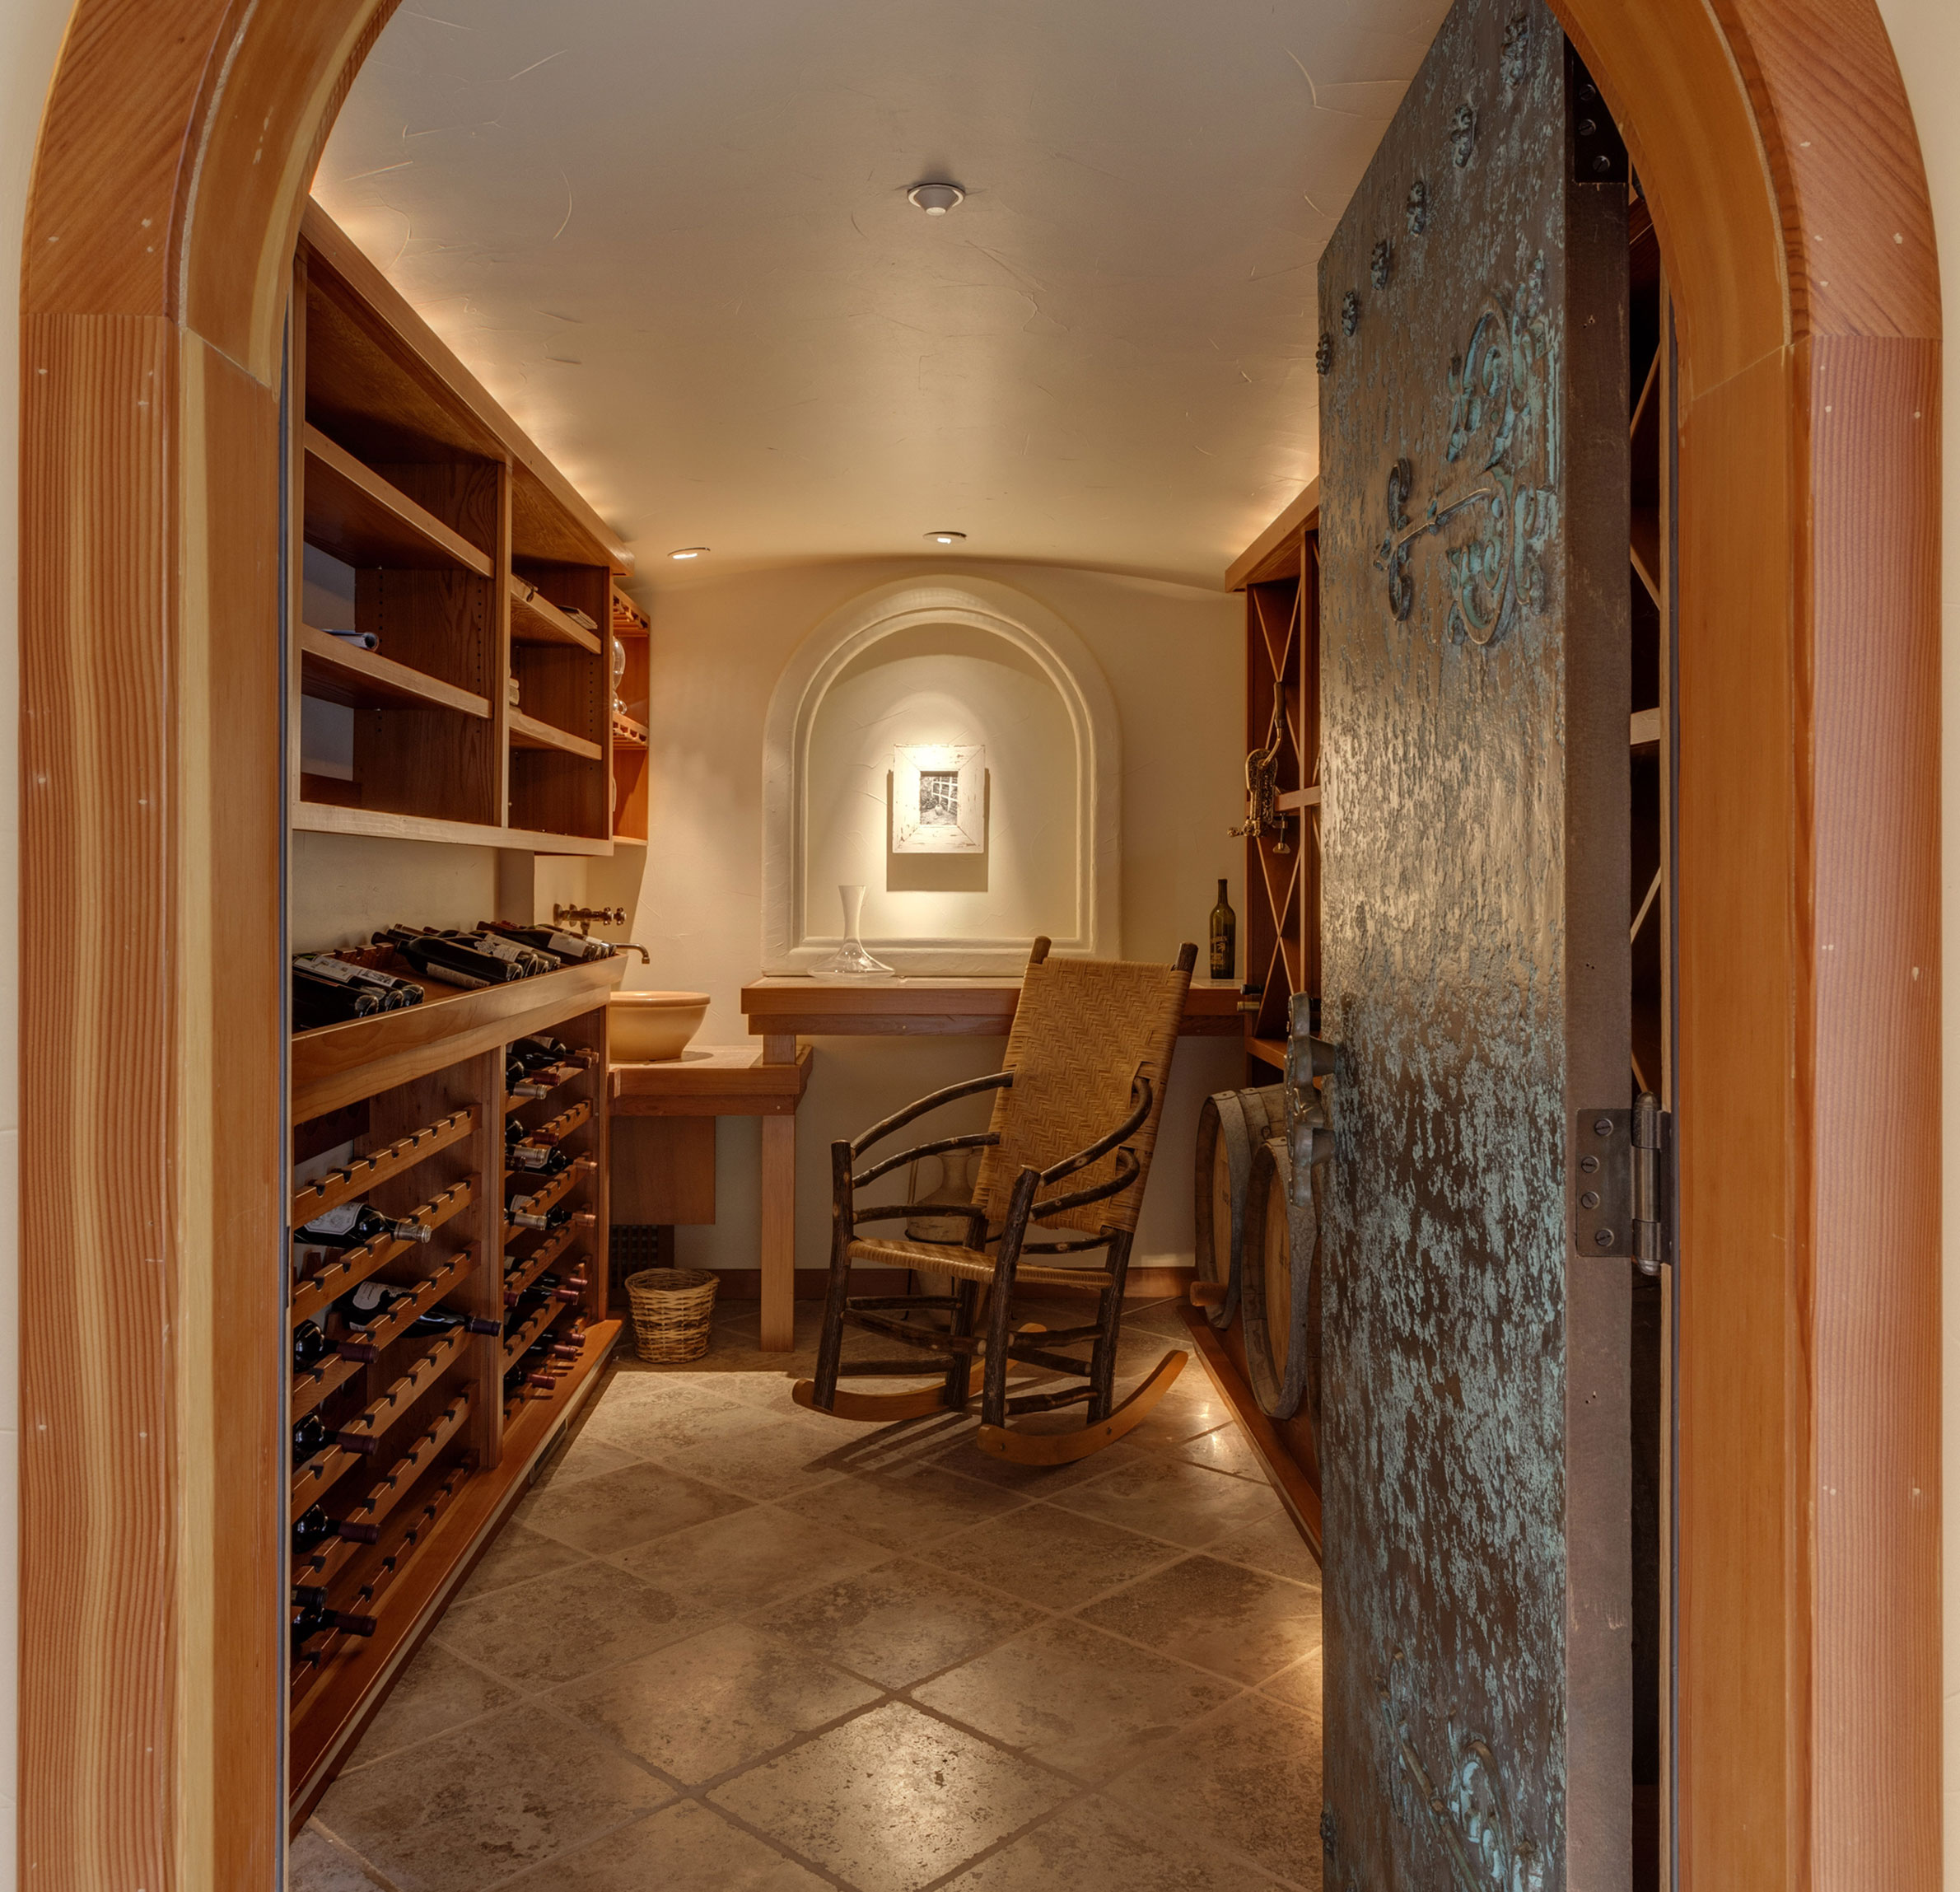 This temperature-regulated wine cellar is a hideaway suitable for leisurely curating and contemplating one's collection.